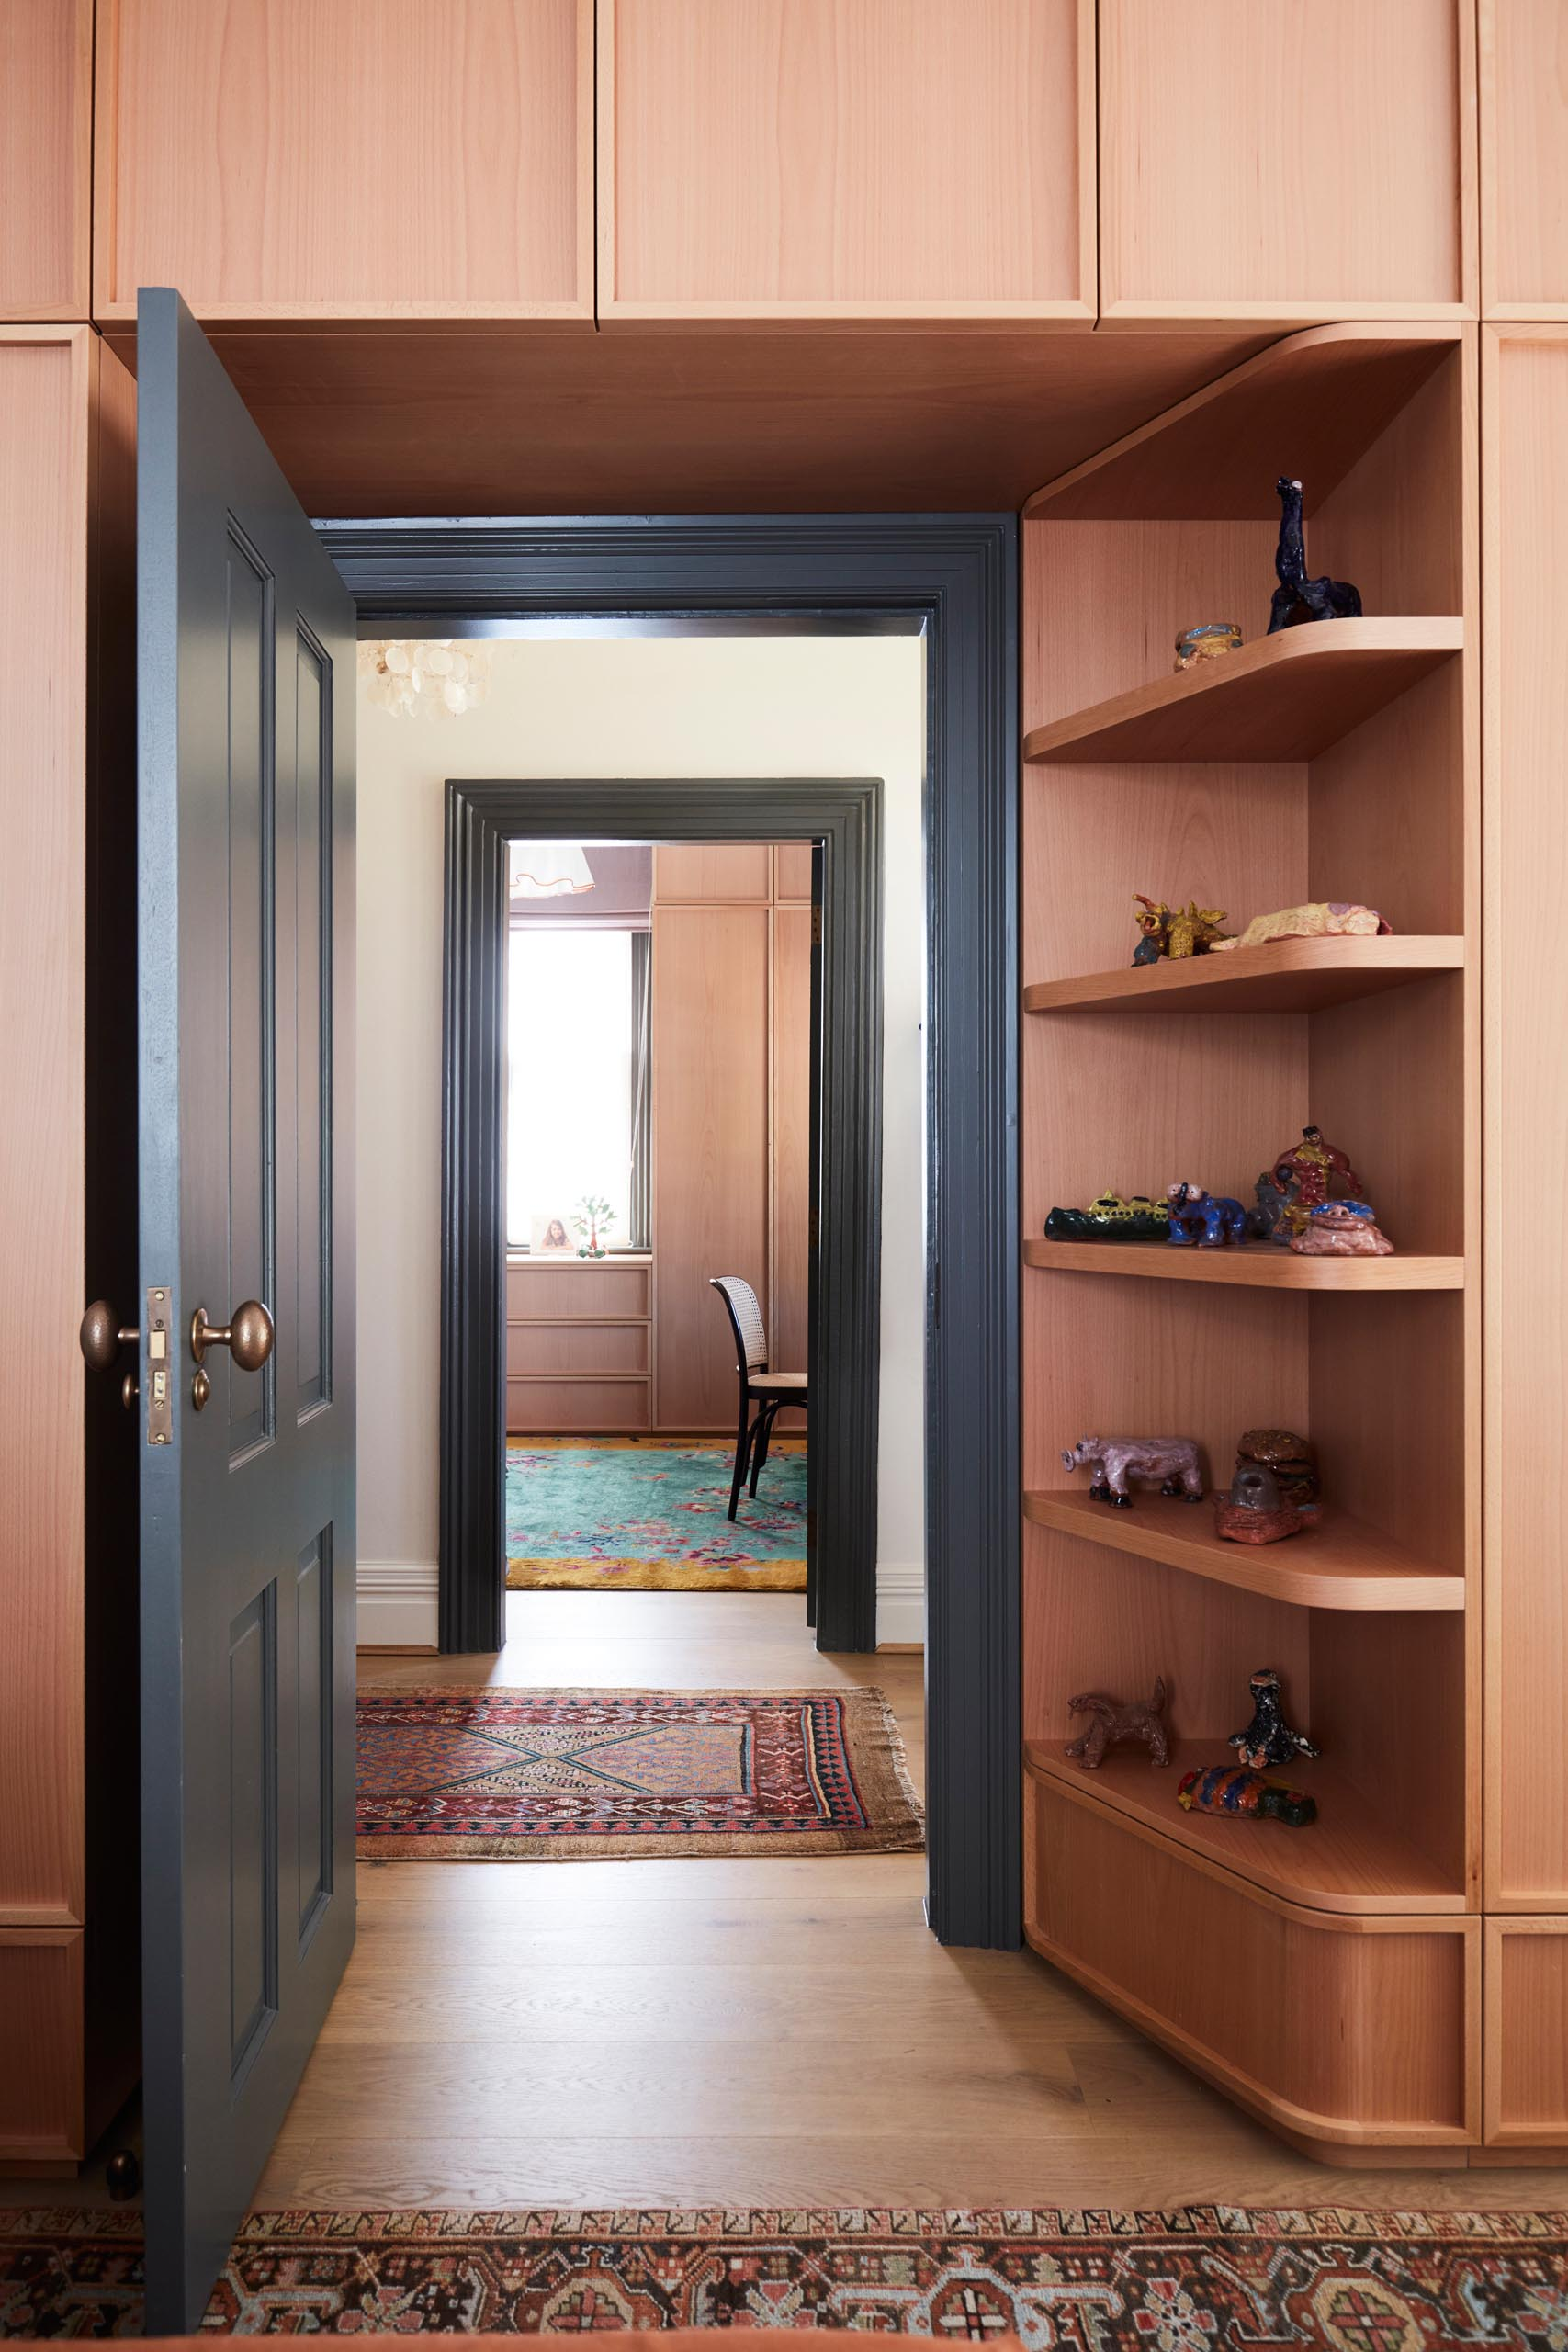 Custom-designed wood storage cabinets with open shelving that wrap around the door.